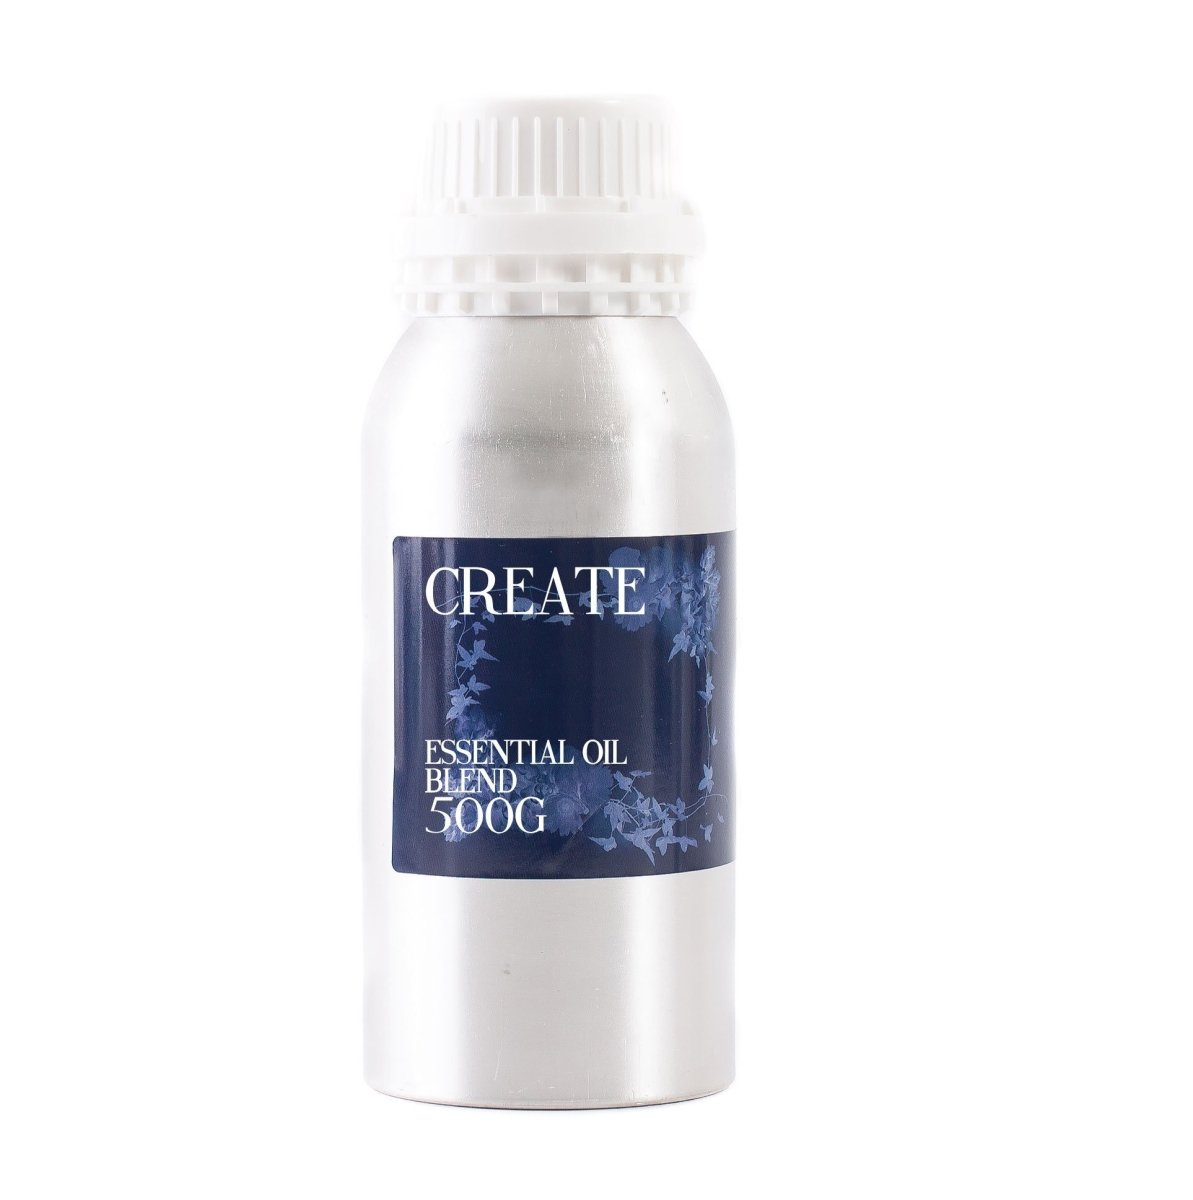 Create - Essential Oil Blends - Mystic Moments UK